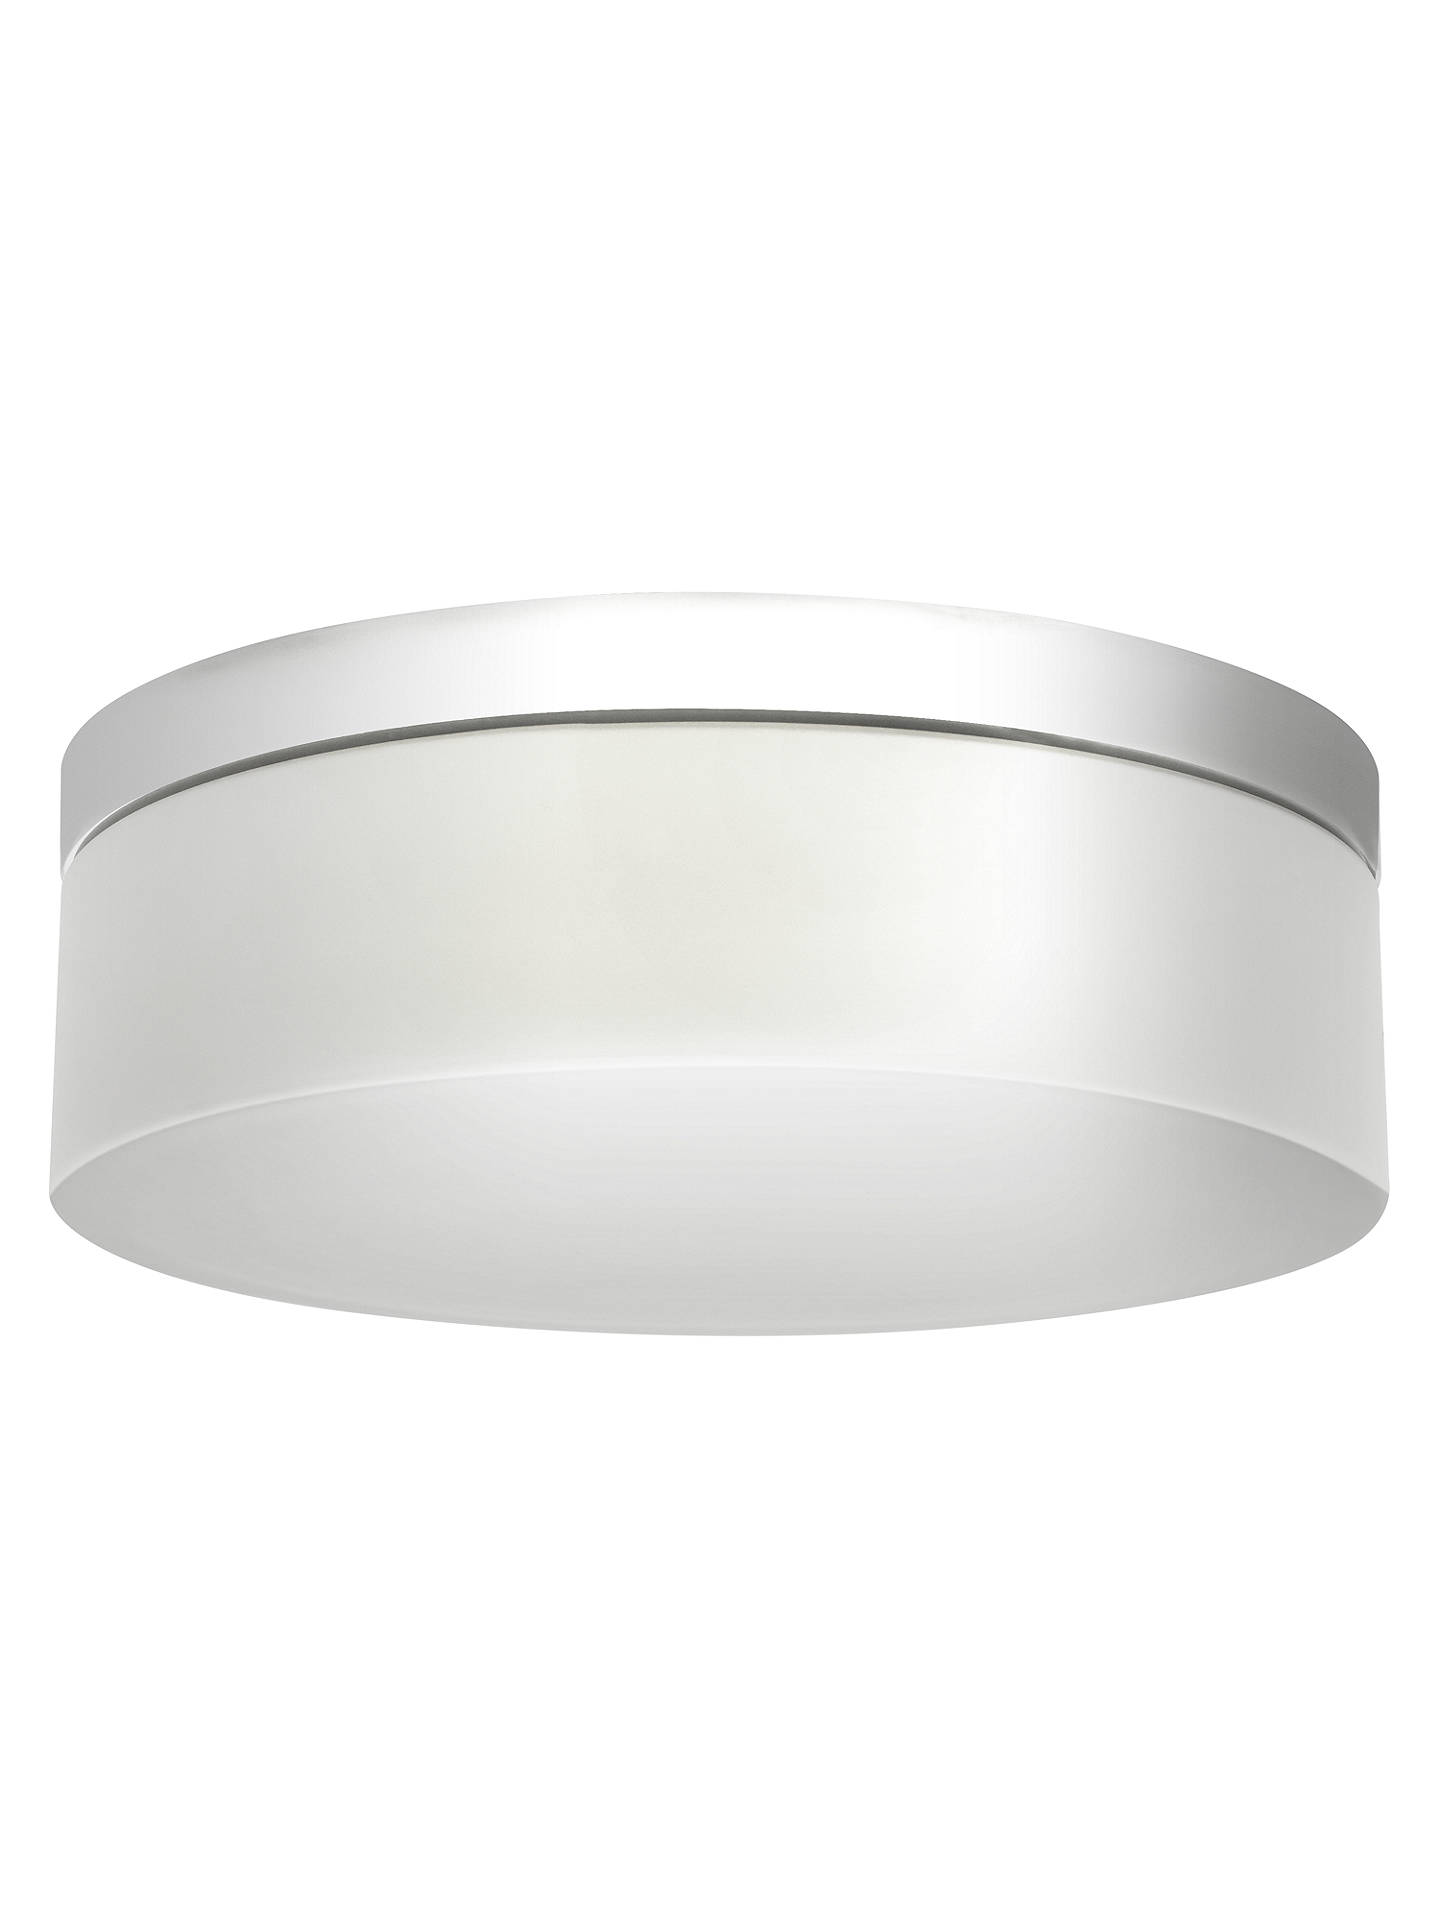 Astro Sabina Round Flush Bathroom Ceiling Light Online At Johnlewis